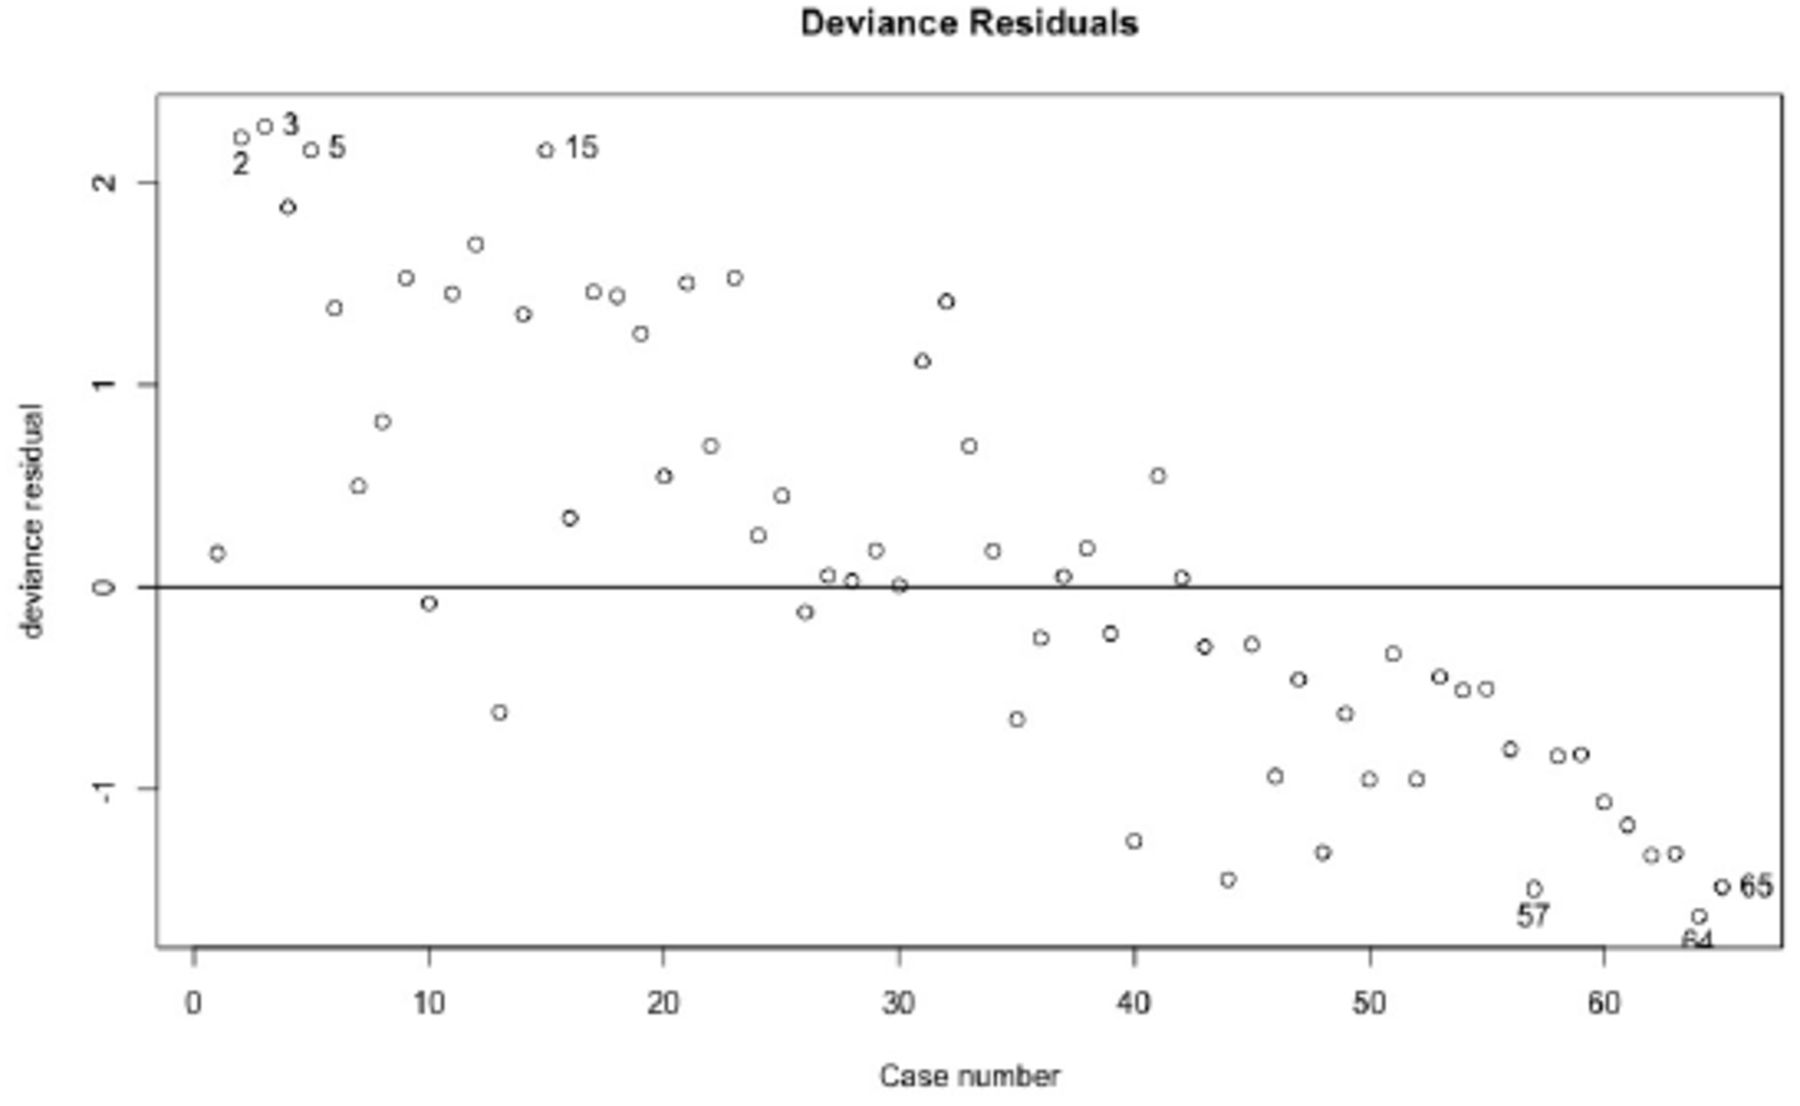 Consensus outlier detection in survival analysis using the